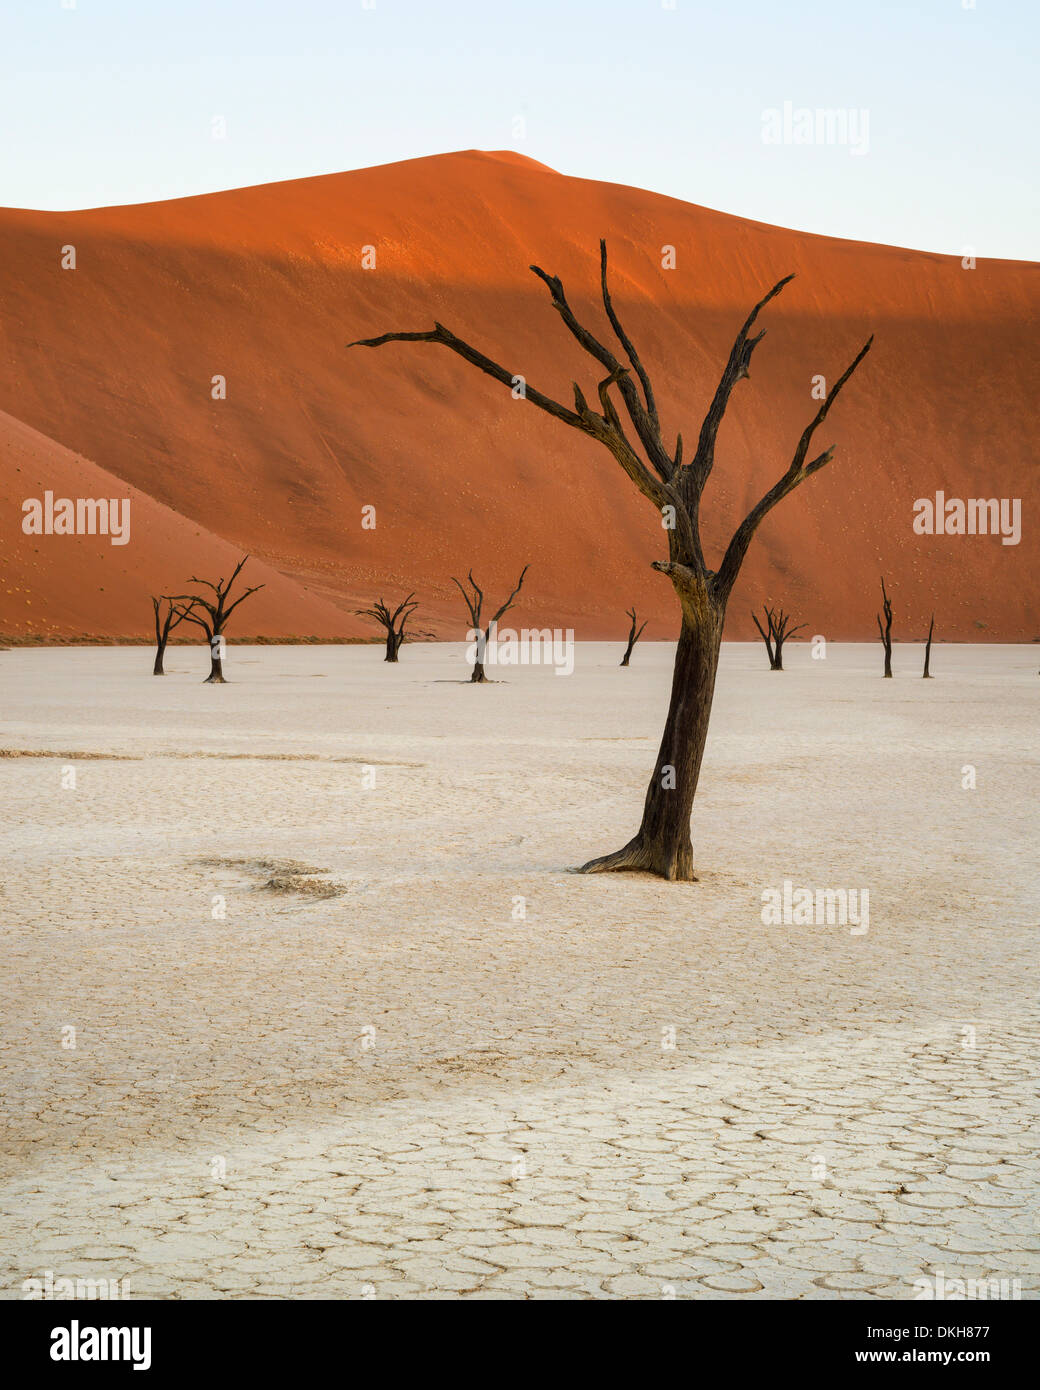 Camelthorn trees in the clay pans of Deadvlei with Big Daddy dune towering above, Namib Naukluft, Namibia, Africa - Stock Image